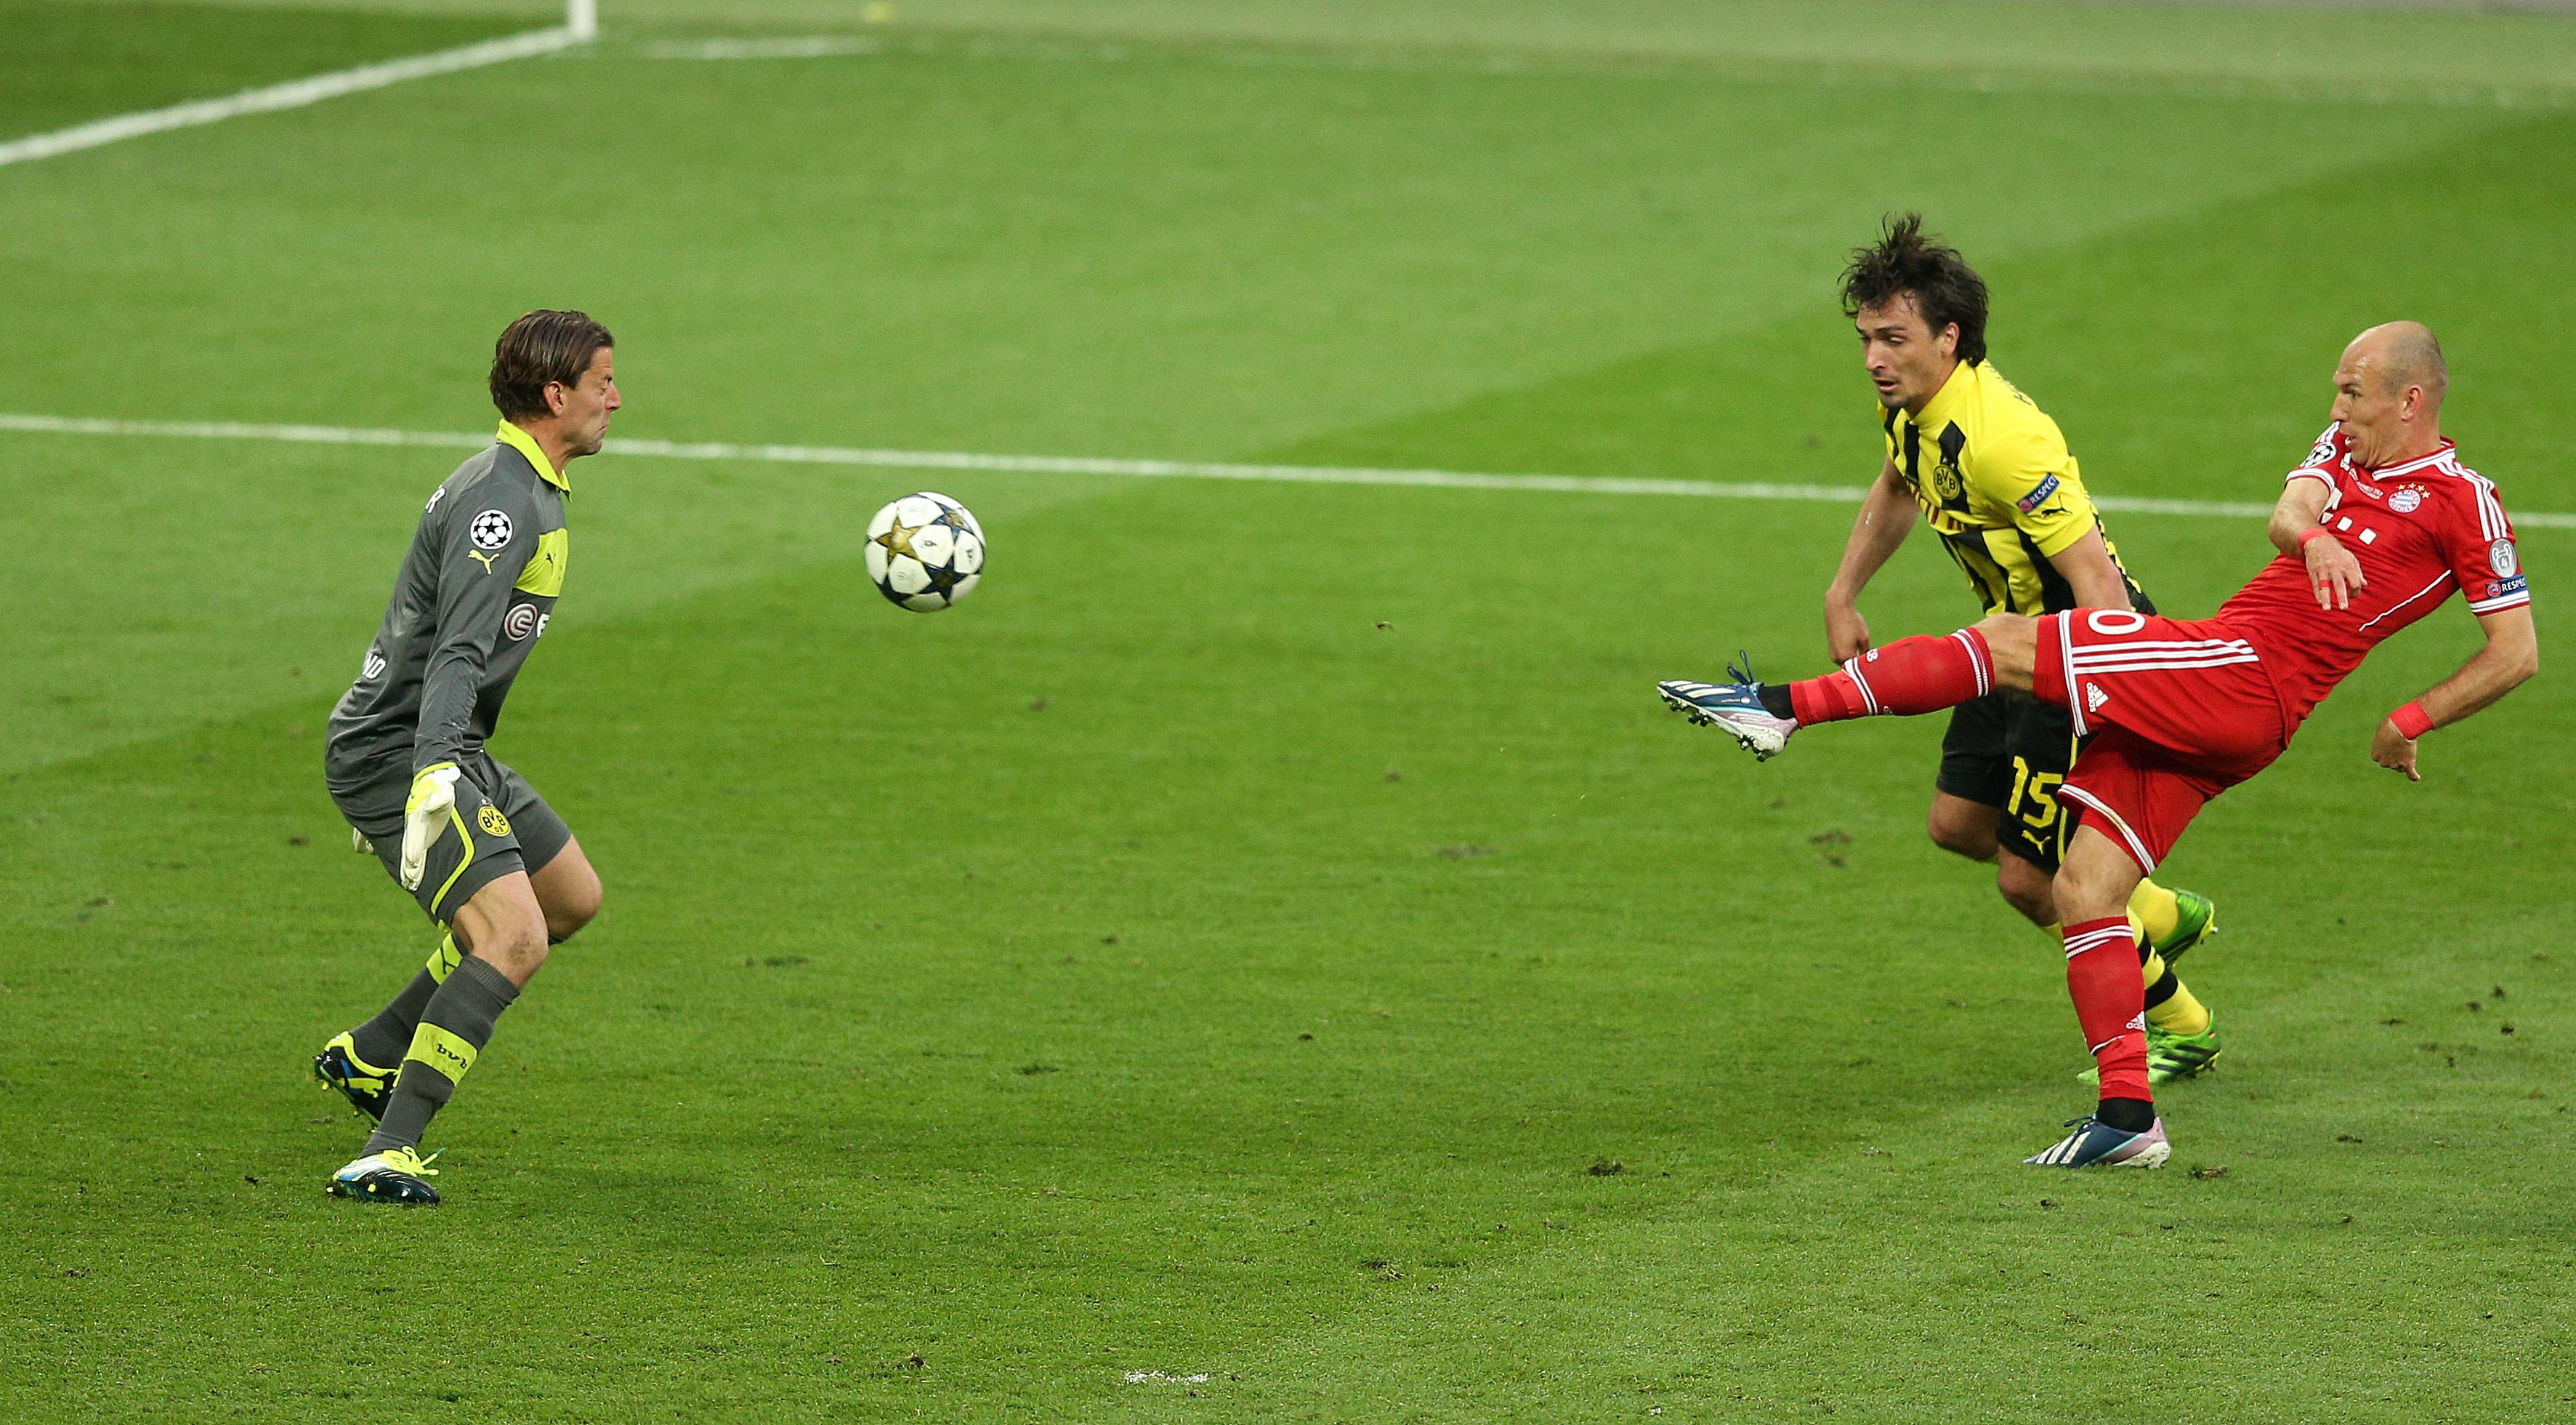 Weidenfeller was BVB's goalkeeper when they faced Bayern Munich in the Champions League final at Wembley